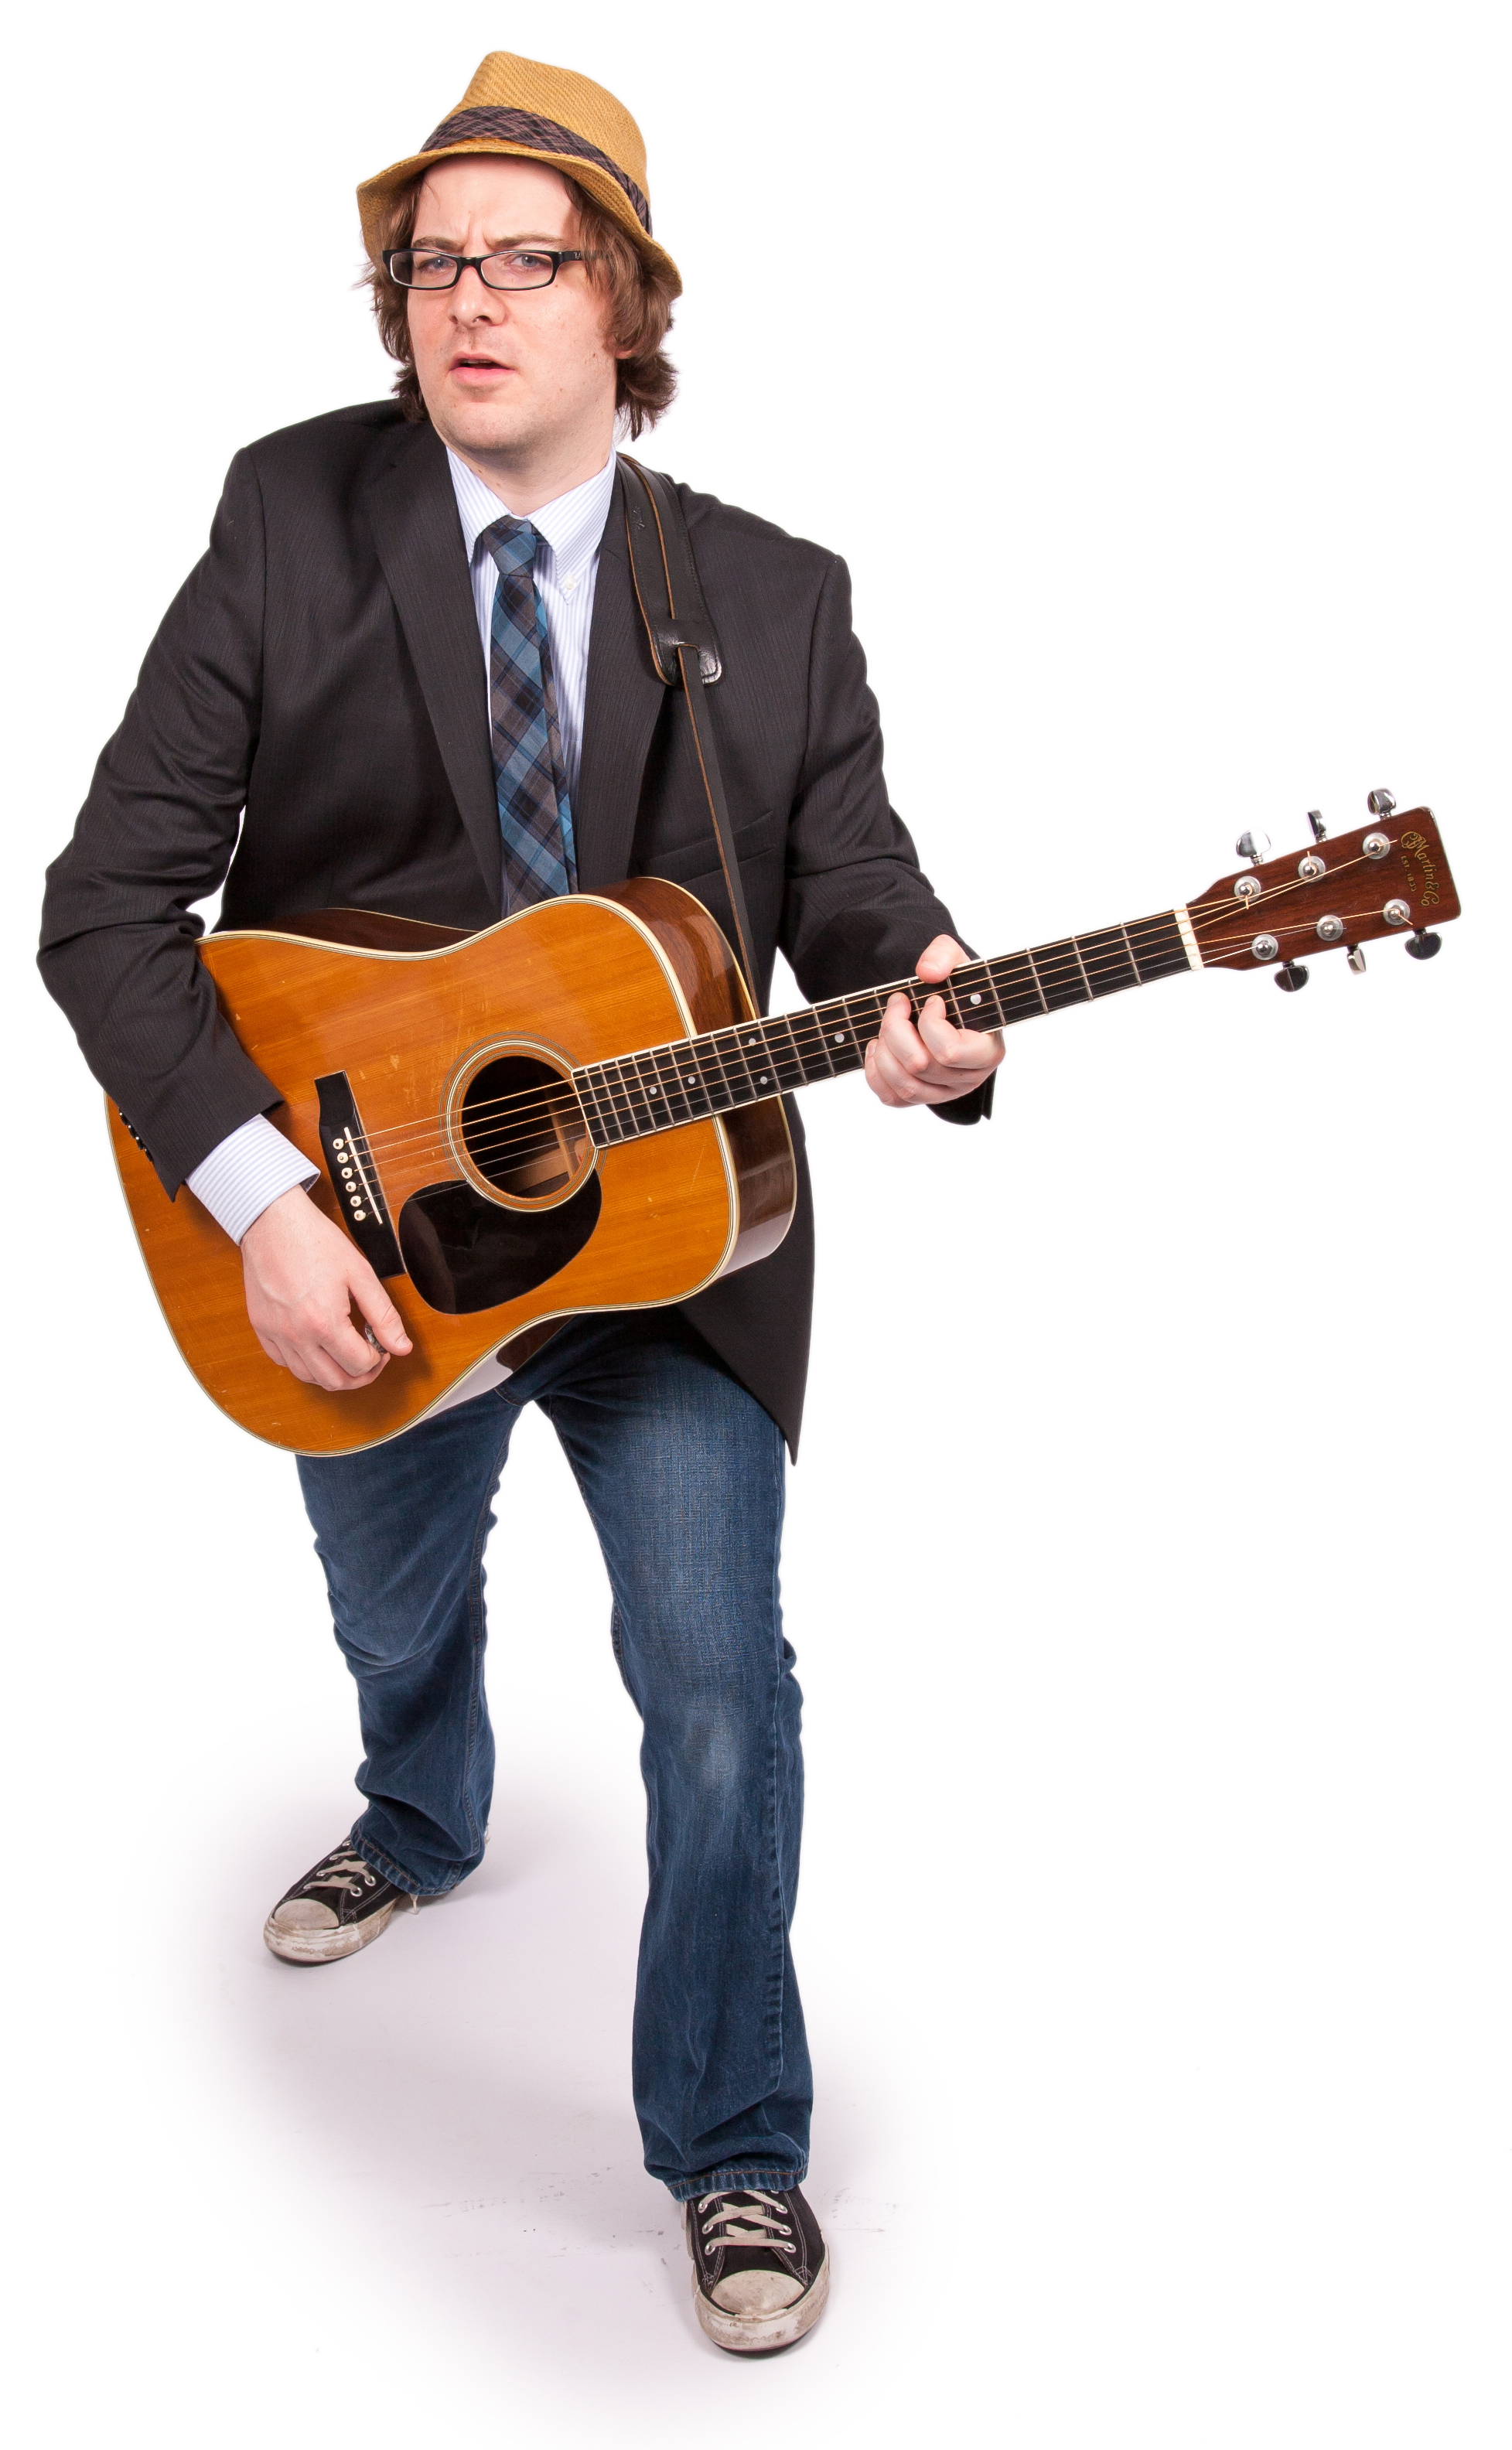 Adam Dalton  -  A musician infatuated with folk, blues, jazz & old time rock,  country and soul music.